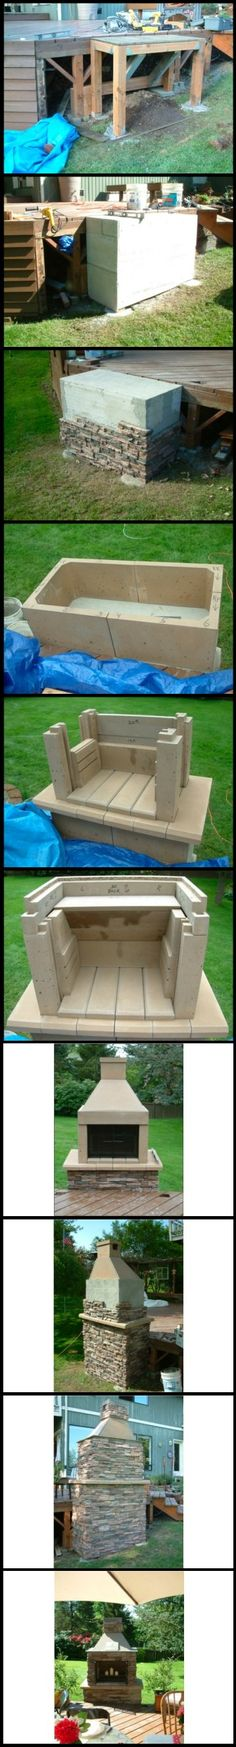 Before-During-After images of a customer's #DIY outdoor #fireplace kit assembly